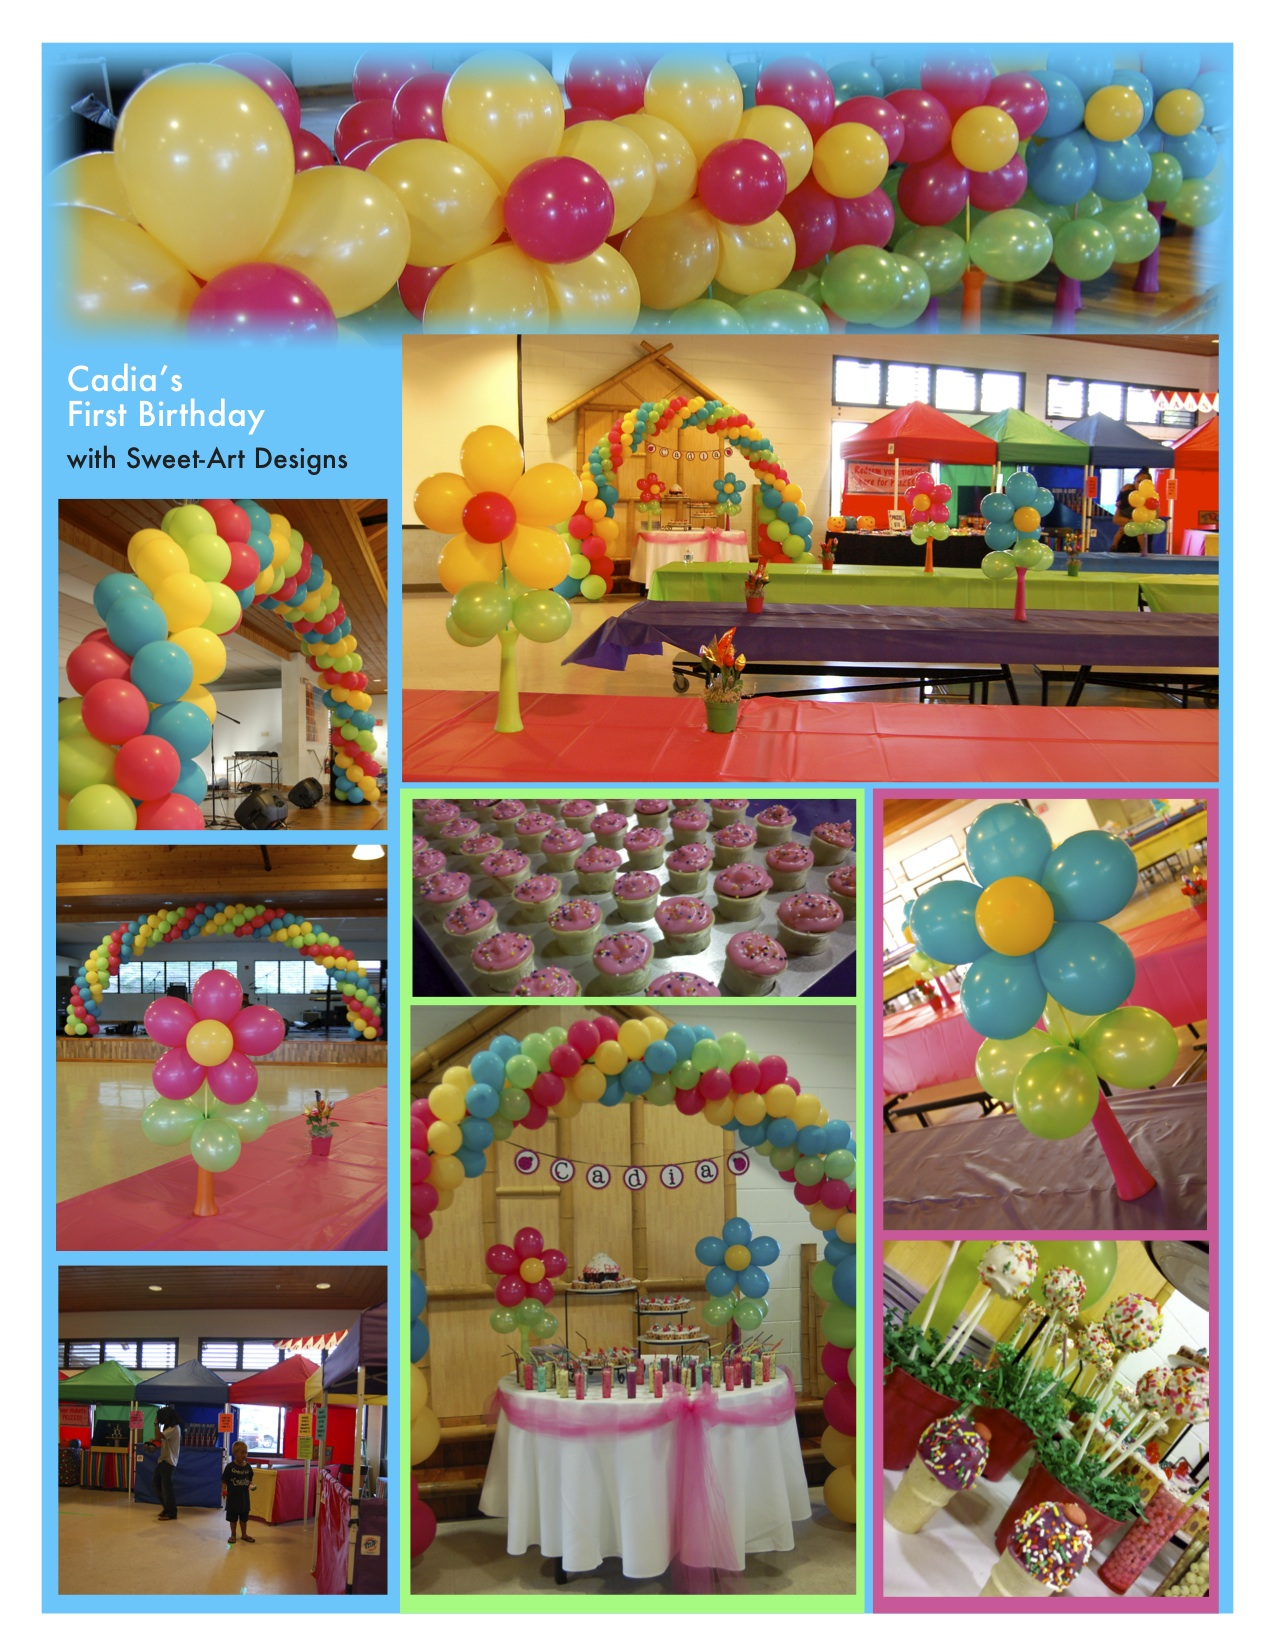 Decorations sweet art designs creative ideas from the for 1st birthday balloon decoration images